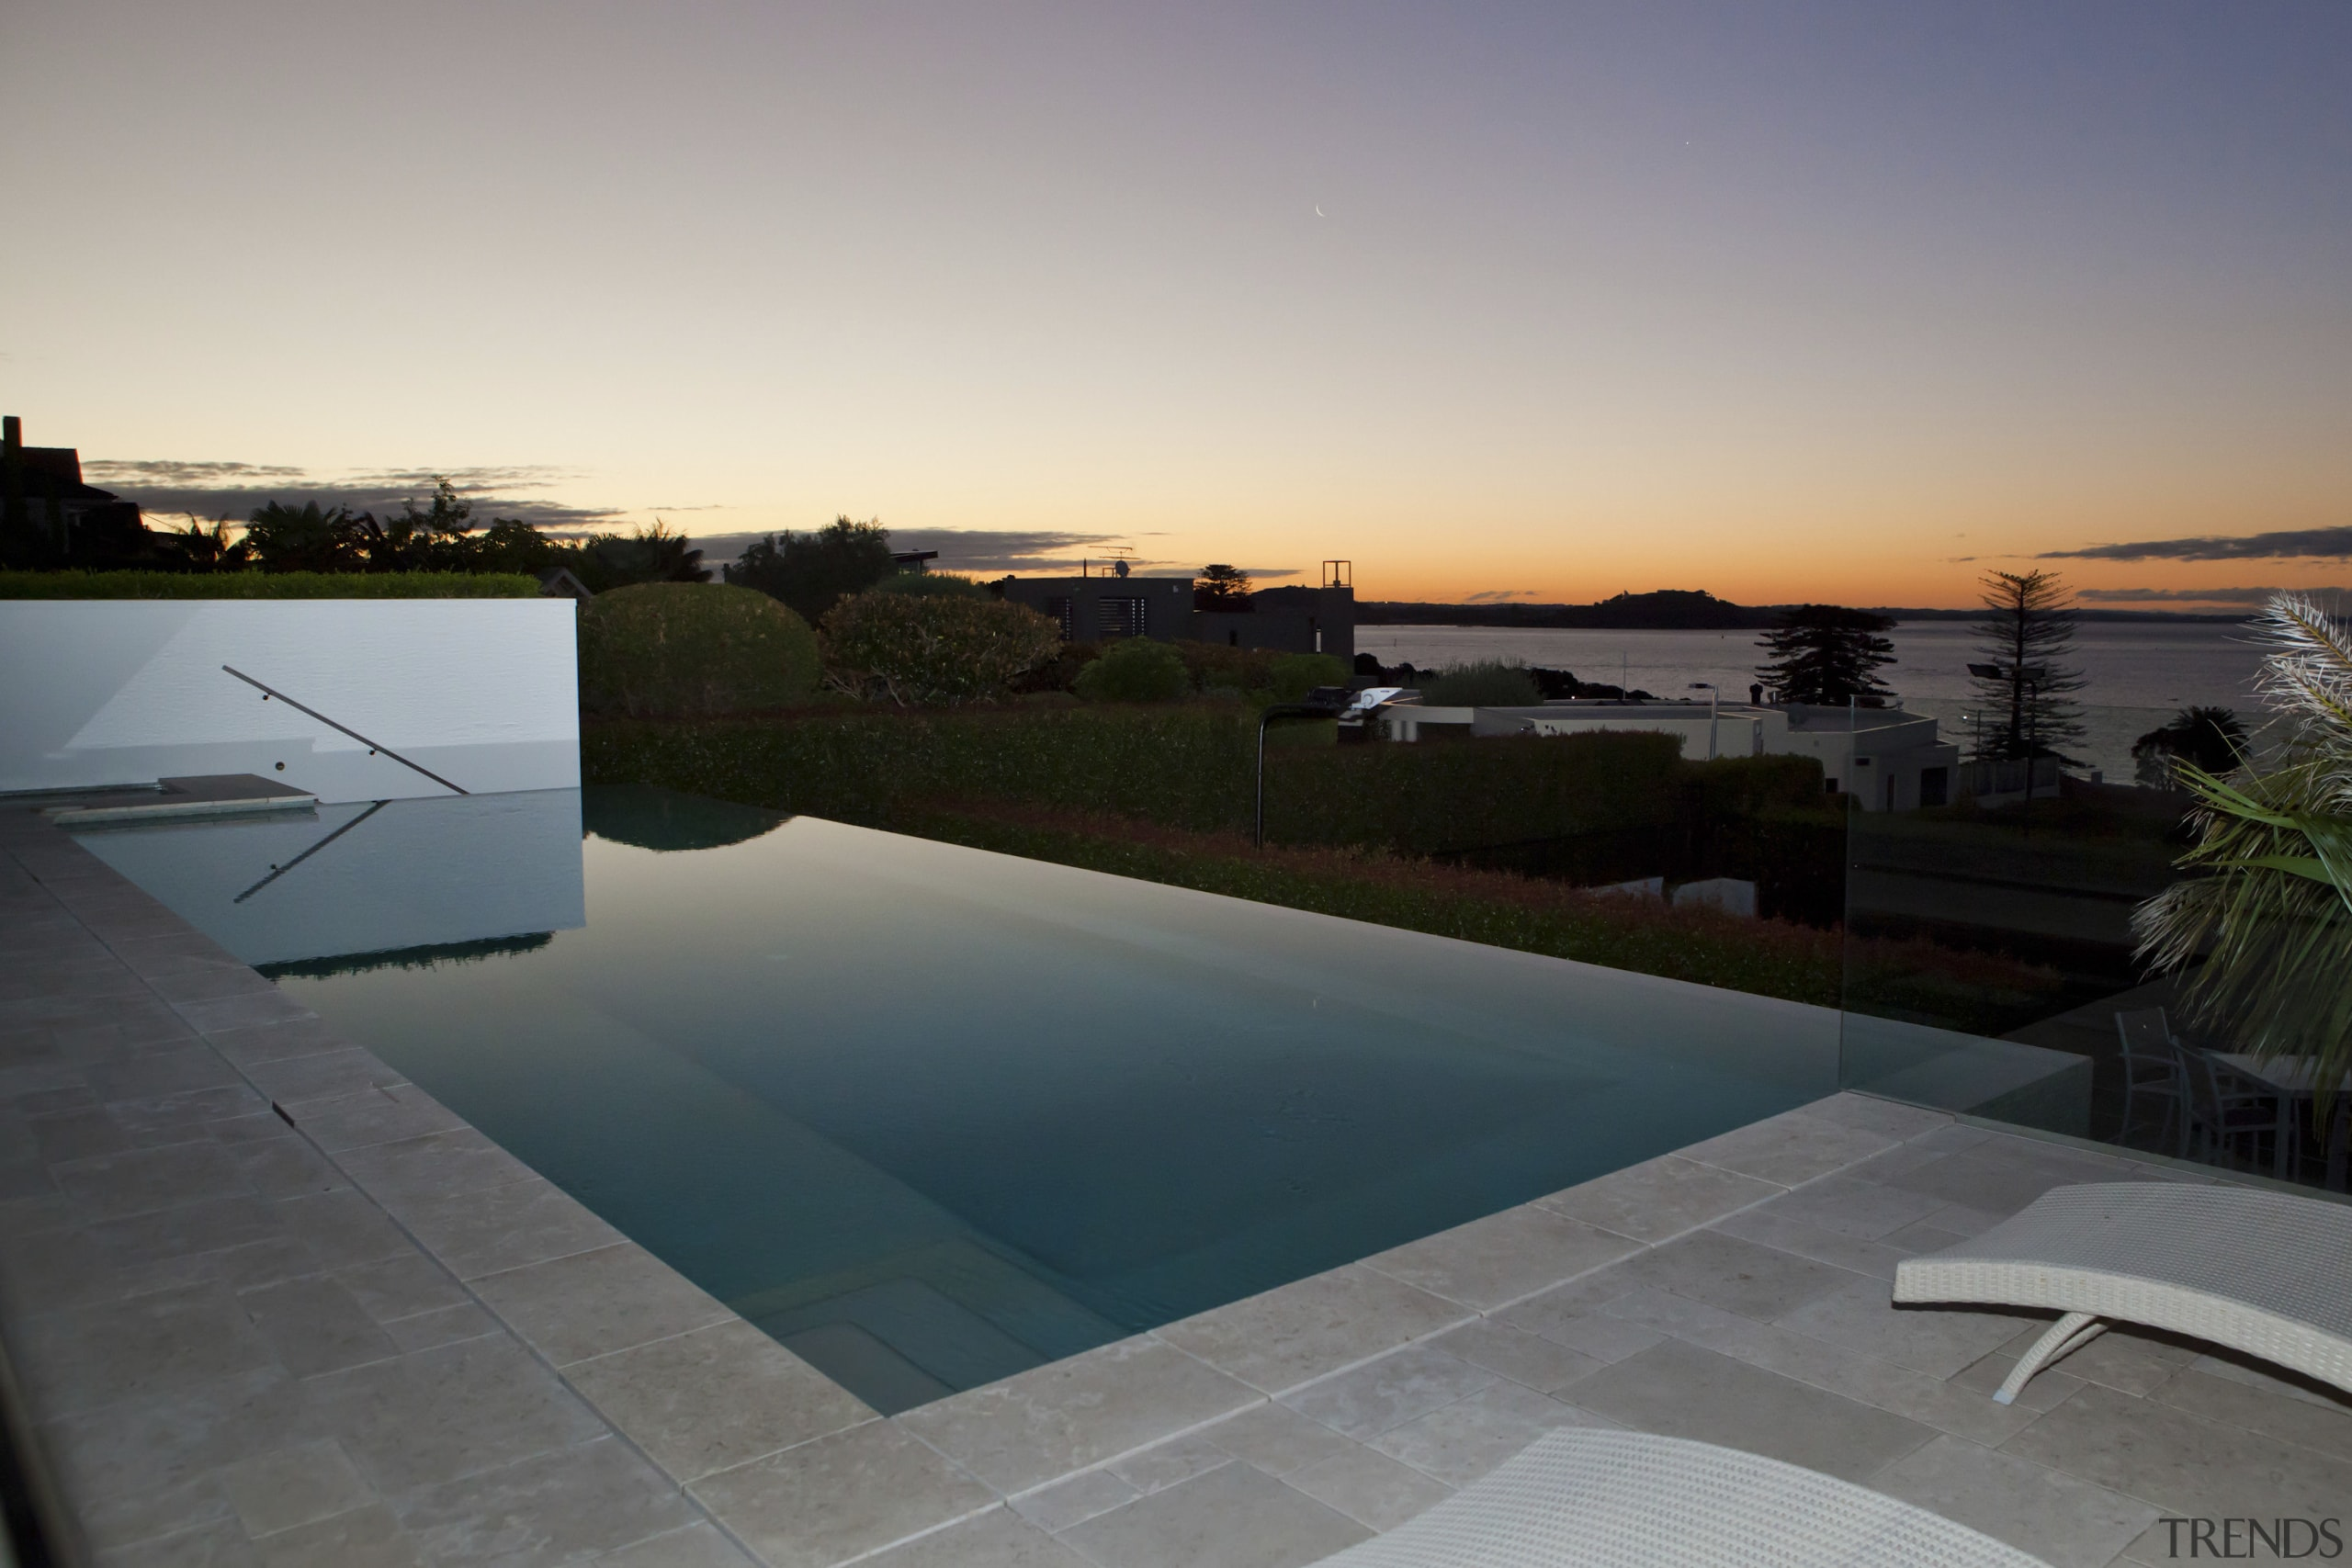 Evening sunset over the pool. - Evening sunset architecture, estate, evening, home, house, morning, property, real estate, reflection, roof, sky, sunlight, swimming pool, water, gray, black